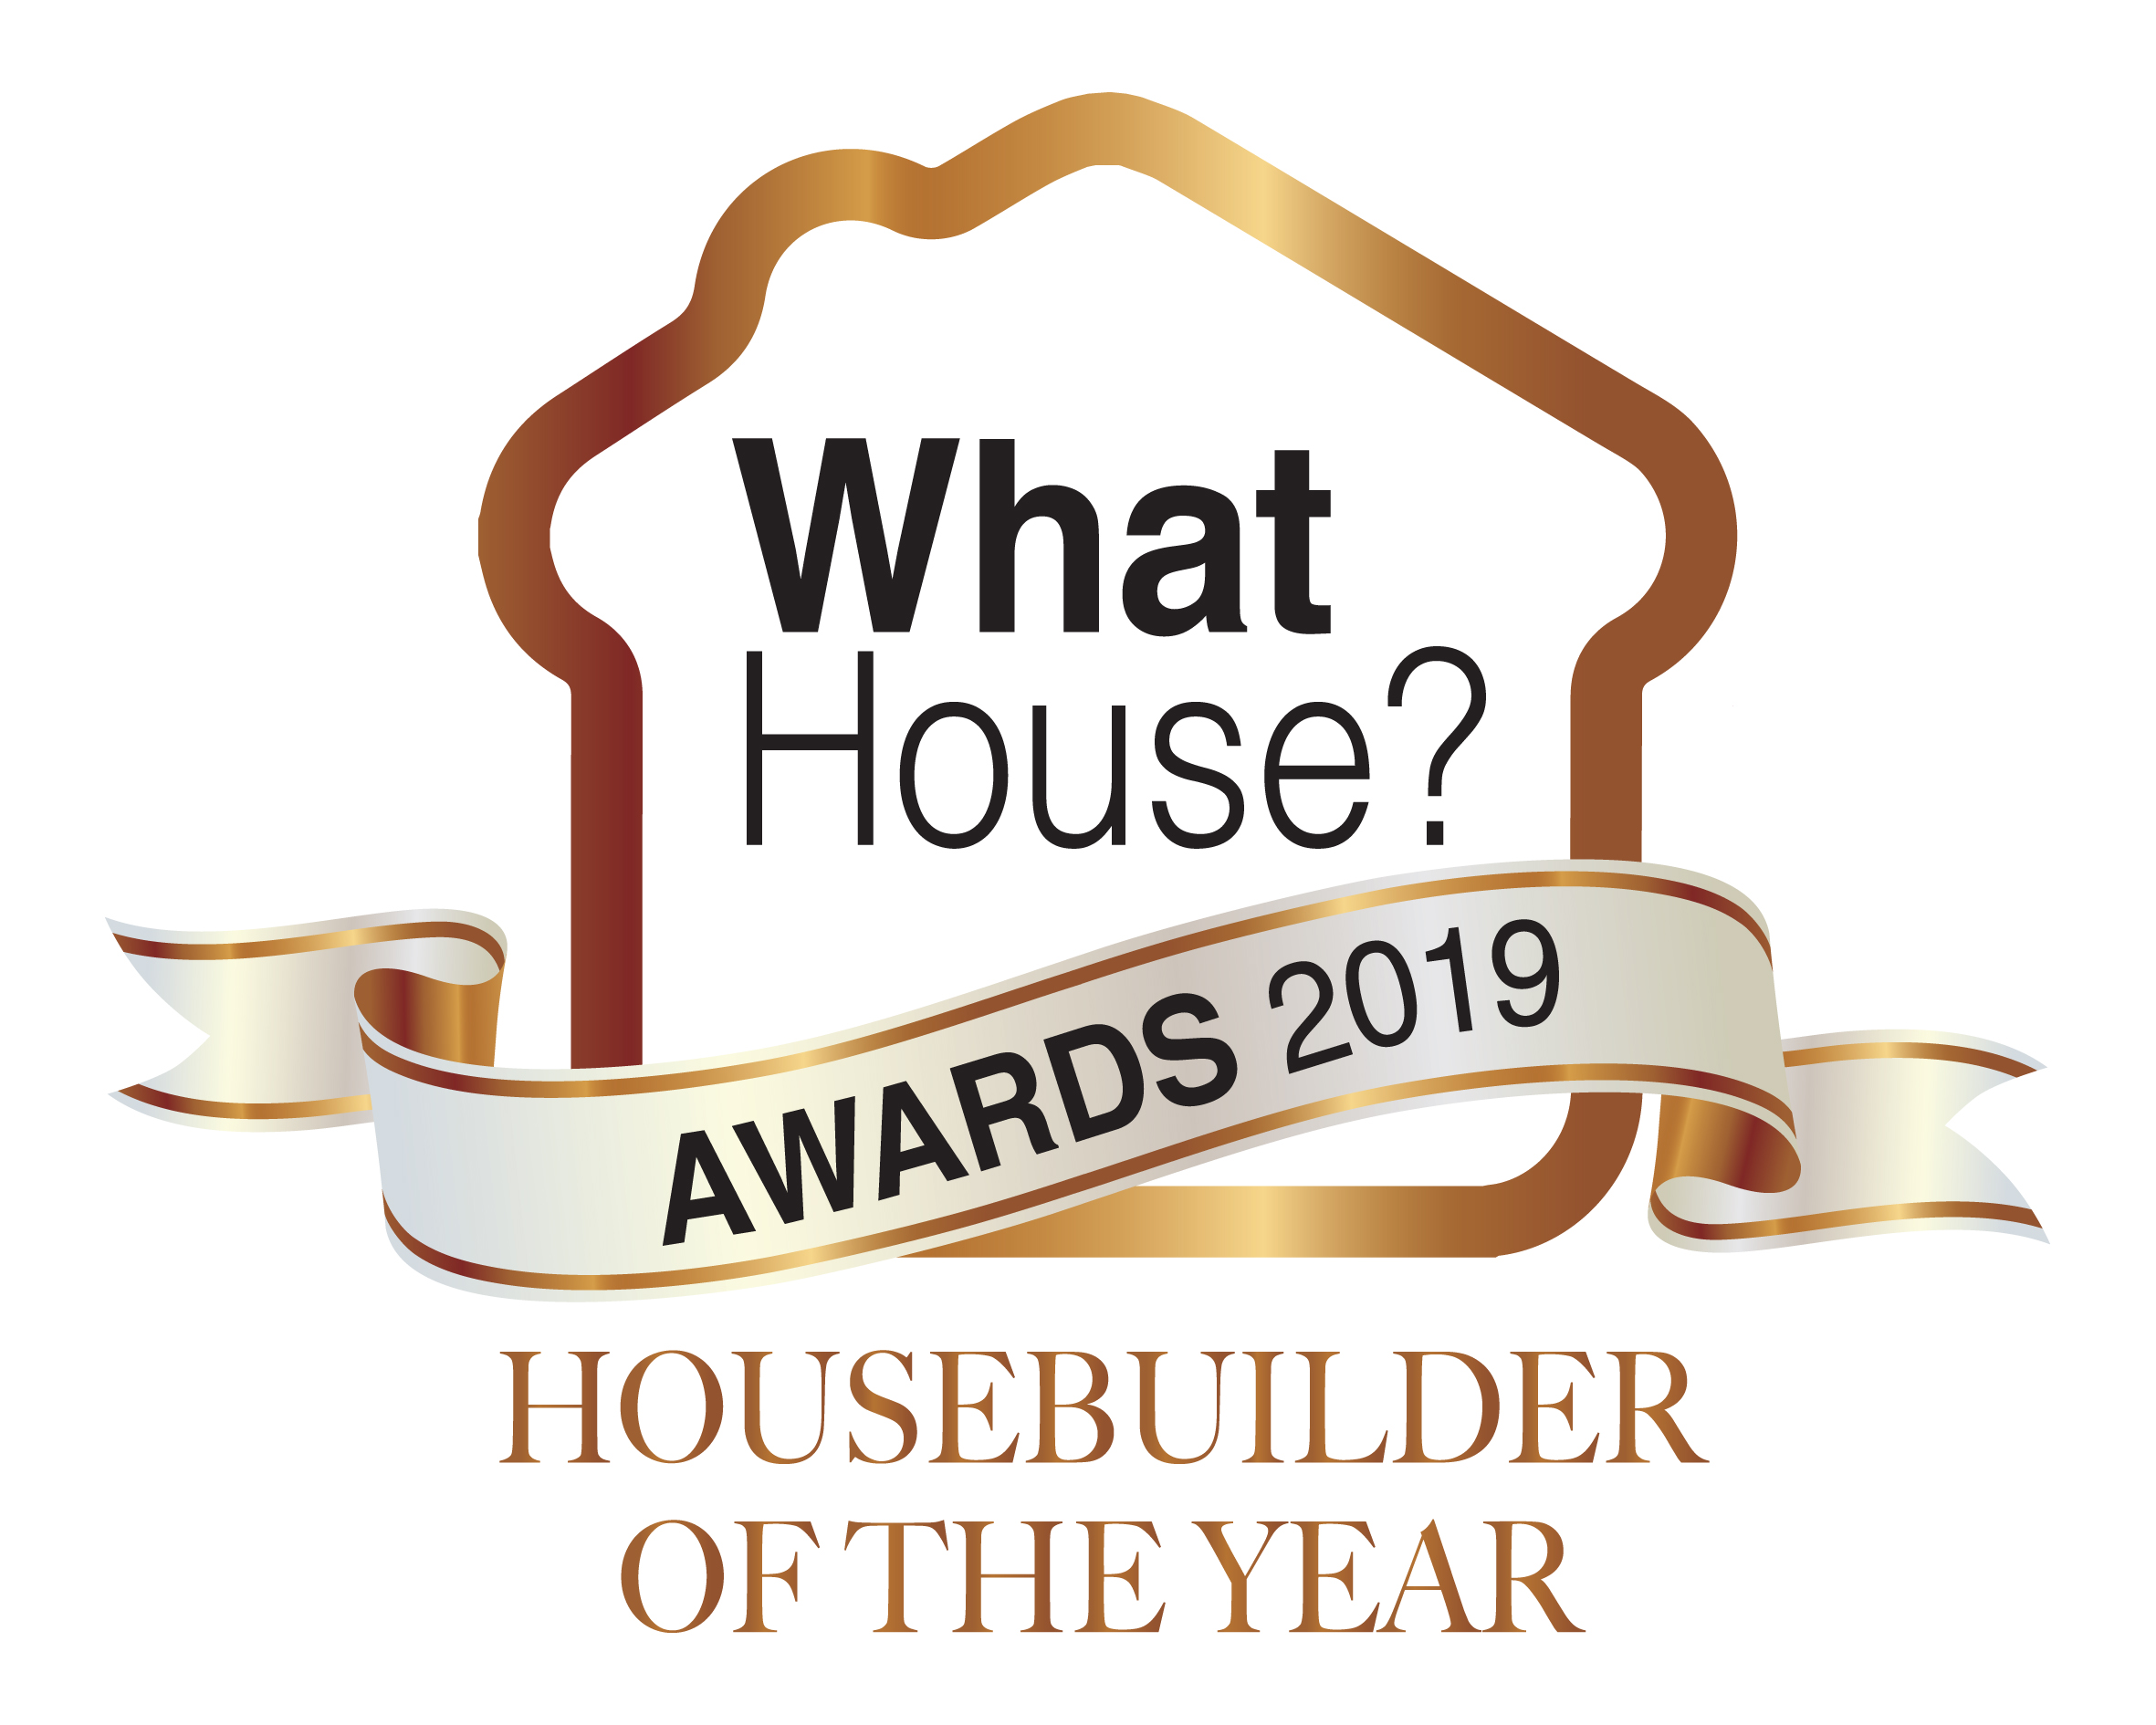 WhatHouse? Award 2019